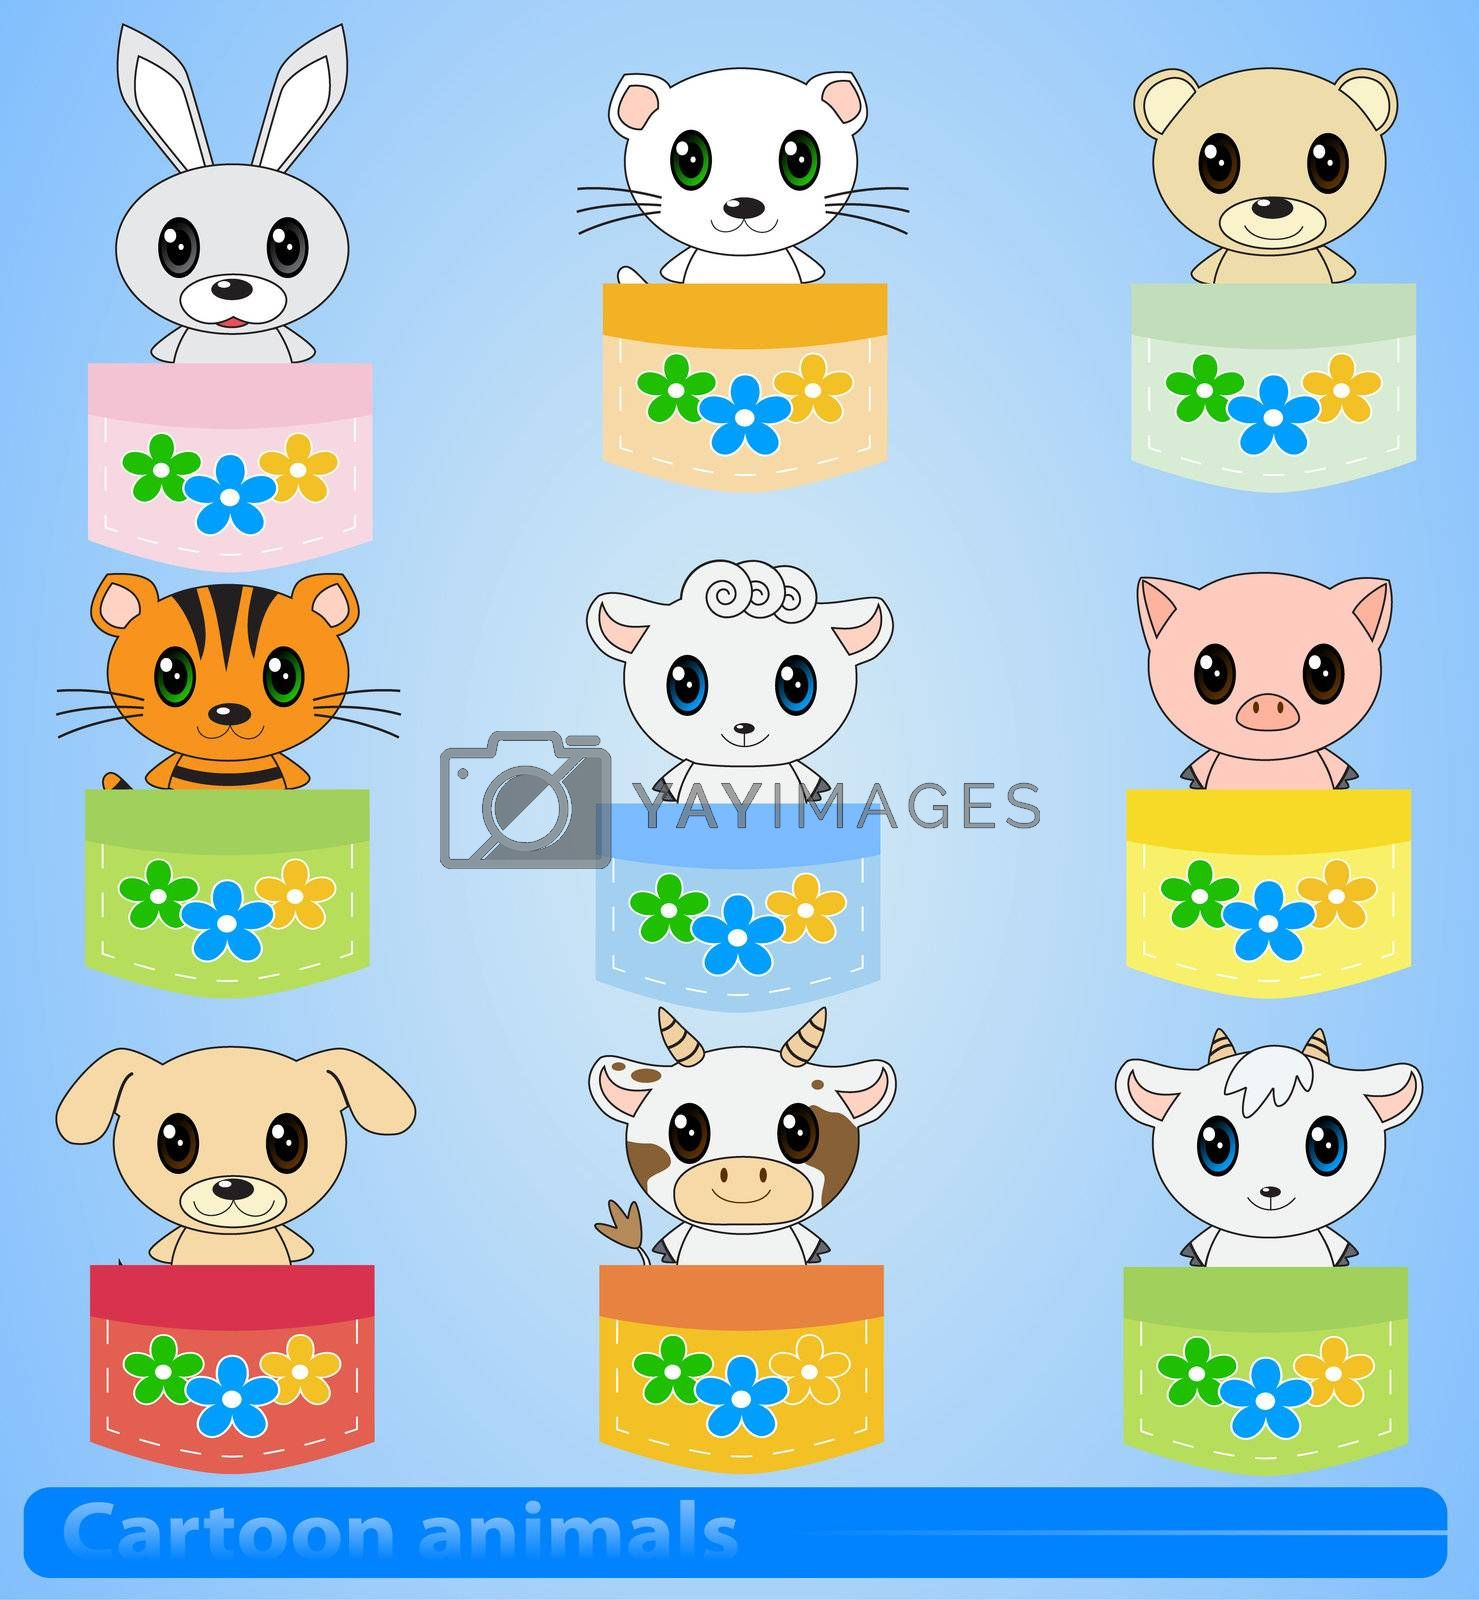 cartoon animals in pockets on a blue background